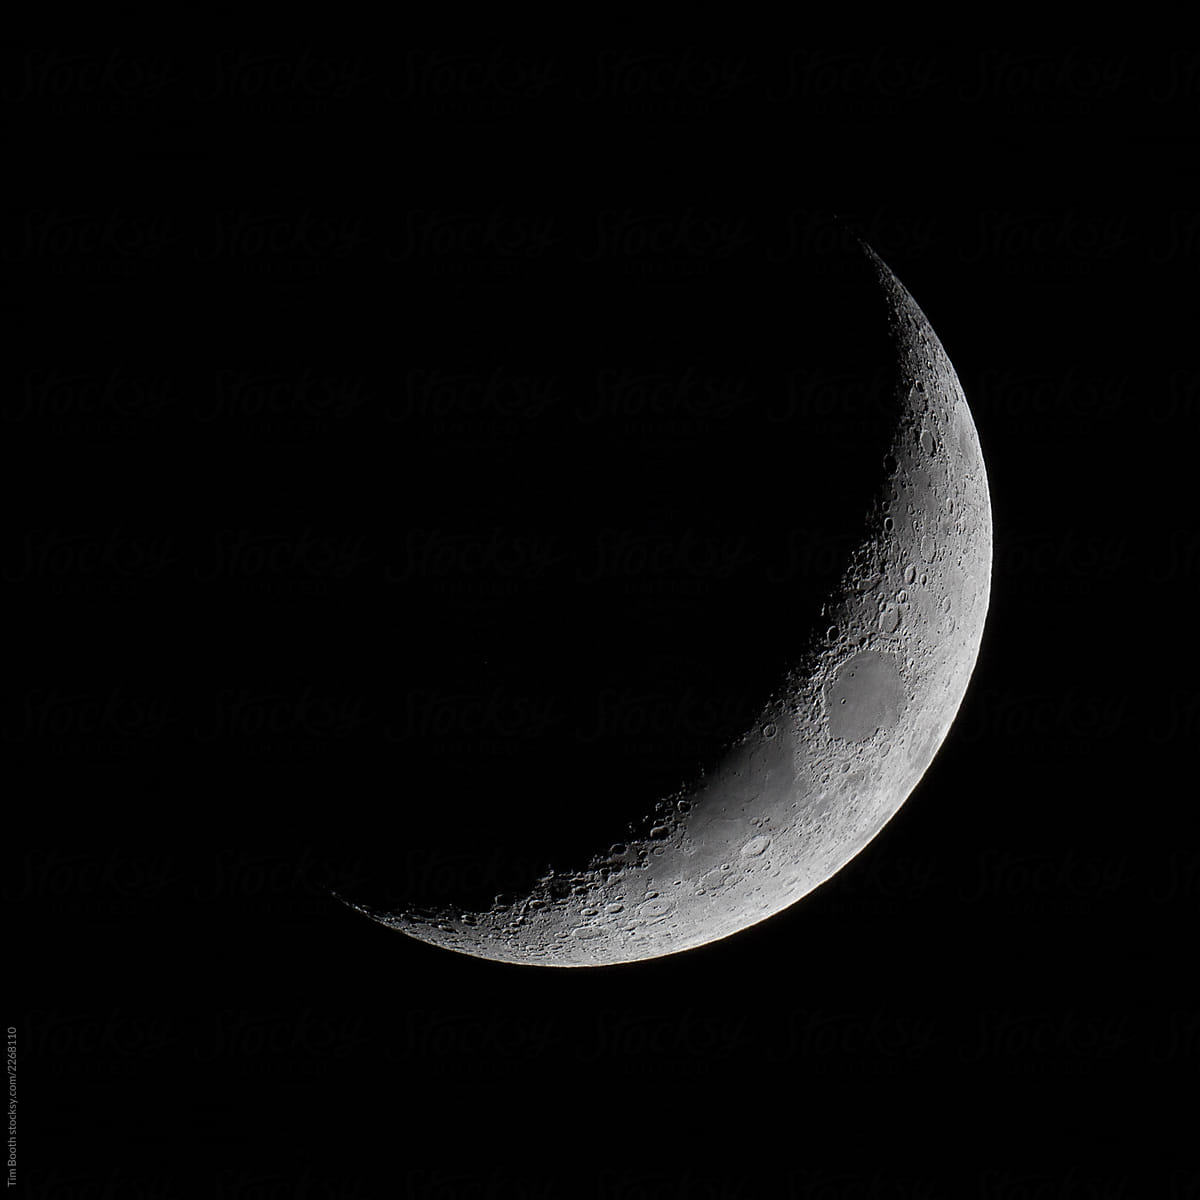 The crescent moon in the night sky. by Tim Booth - Stocksy ...